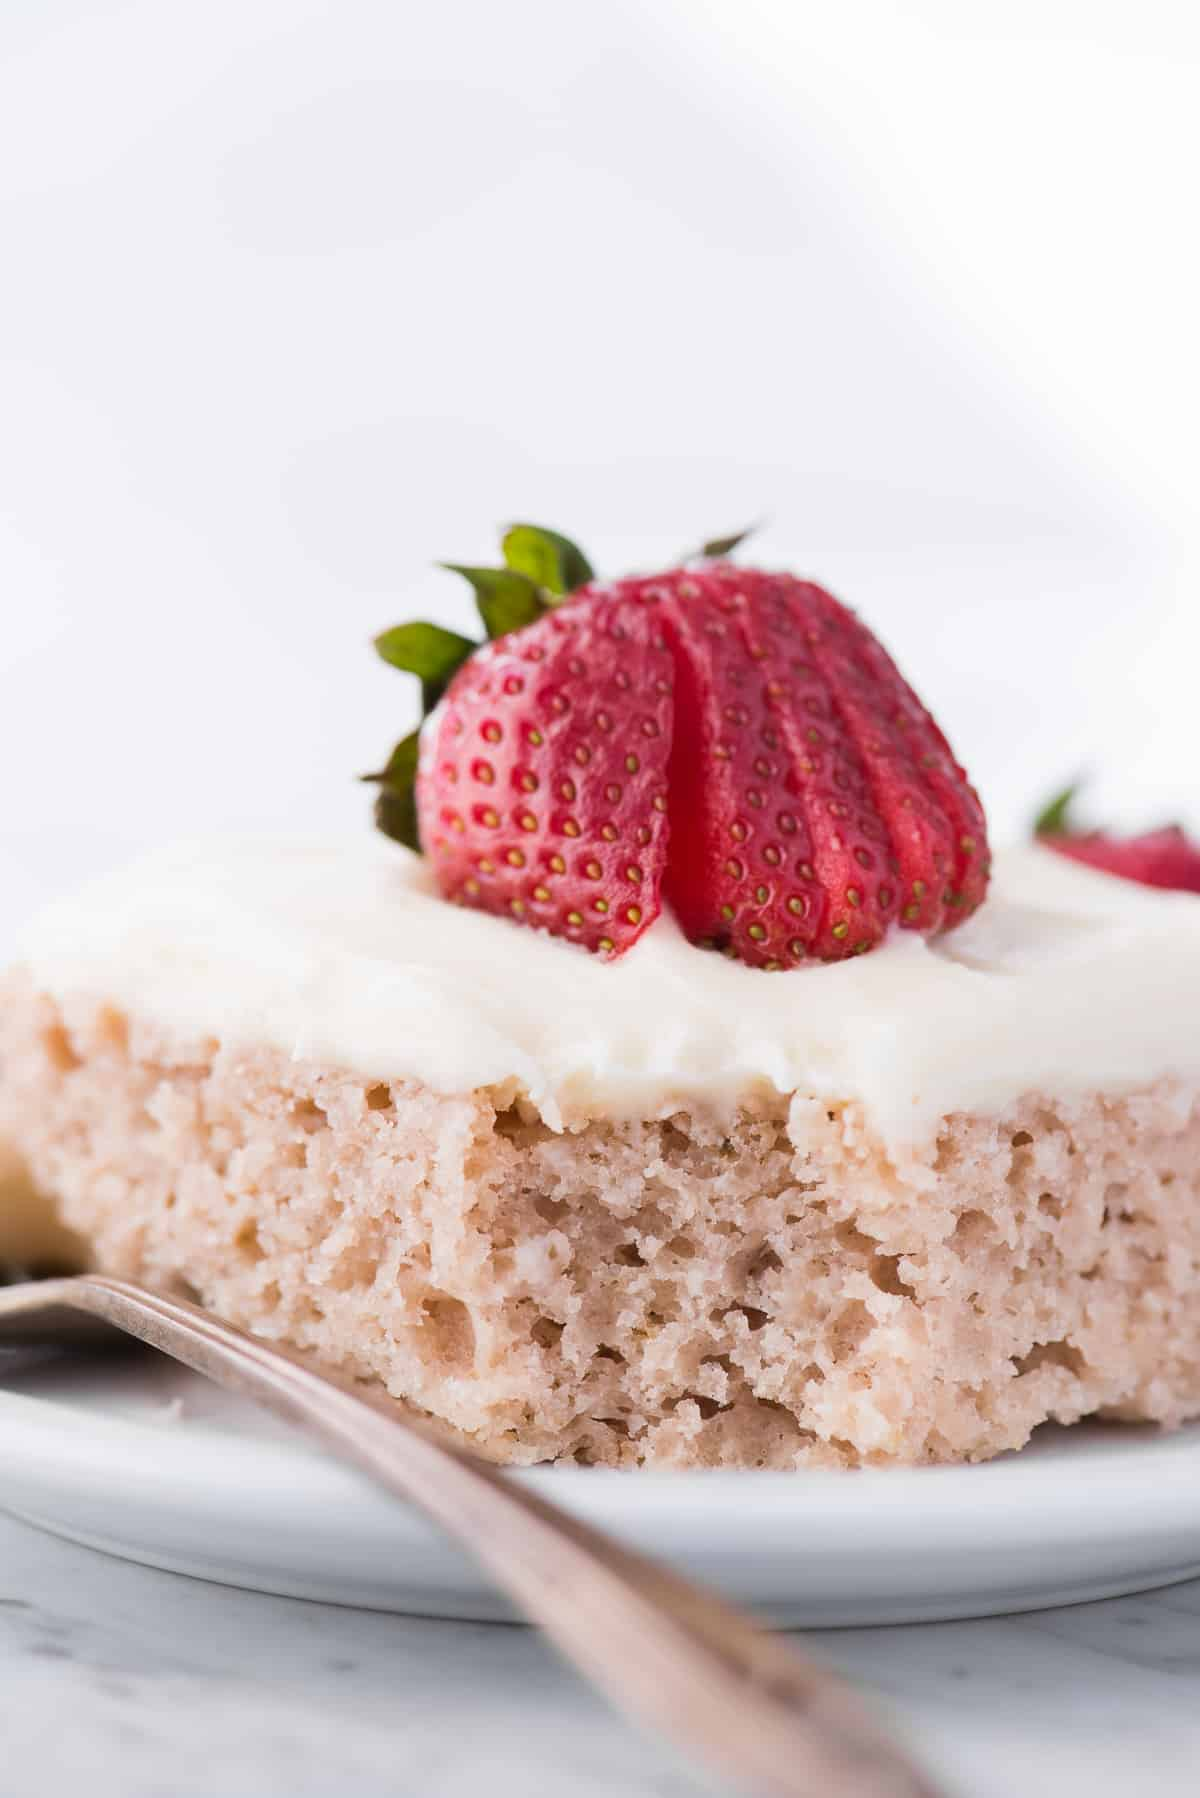 strawberry cake with cream cheese frosting on white plate with bite removed